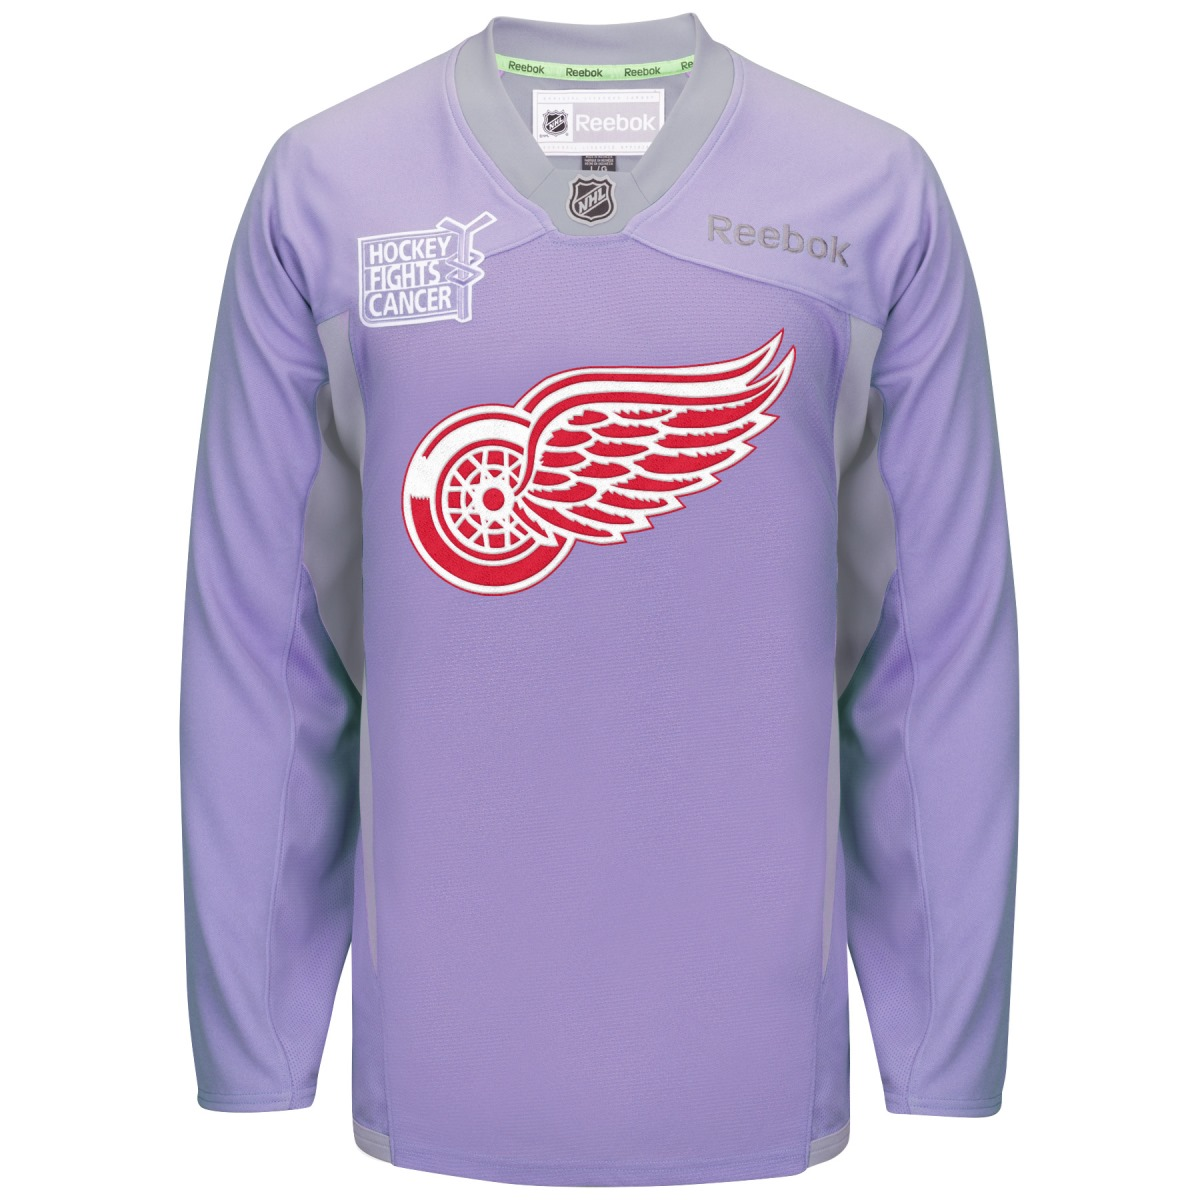 Detroit Red Wings Reebok NHL Hockey Fights Cancer Practic...